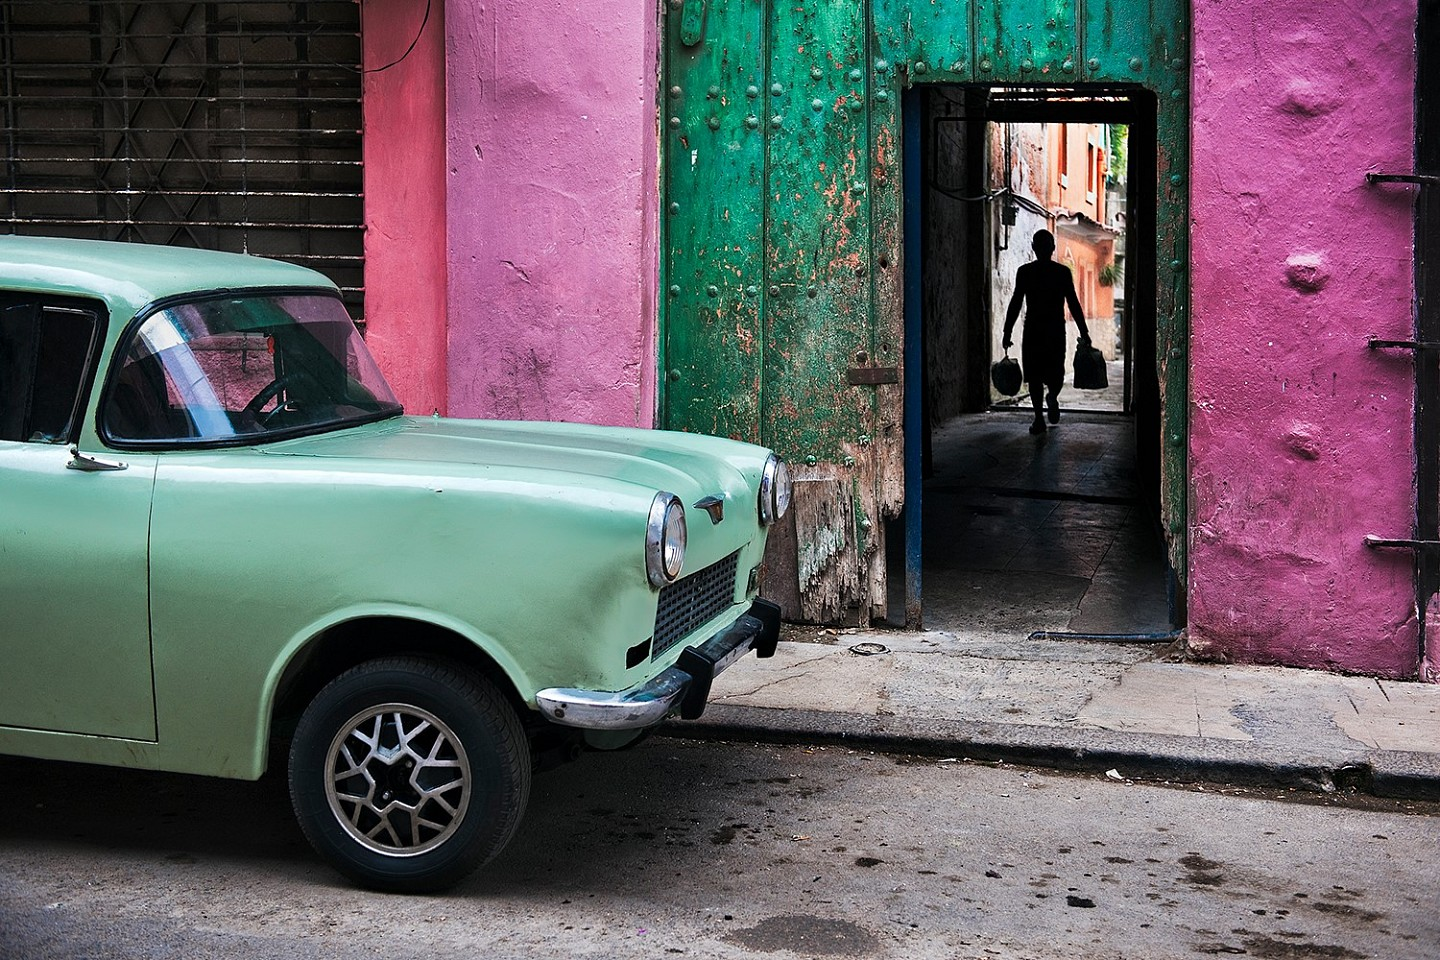 Steve McCurry ,   Russian Car in Old Havana  ,  2010     FujiFlex Crystal Archive Print ,  30 x 40 in. (Inquire for additional sizes)     CUBA-10021.2015